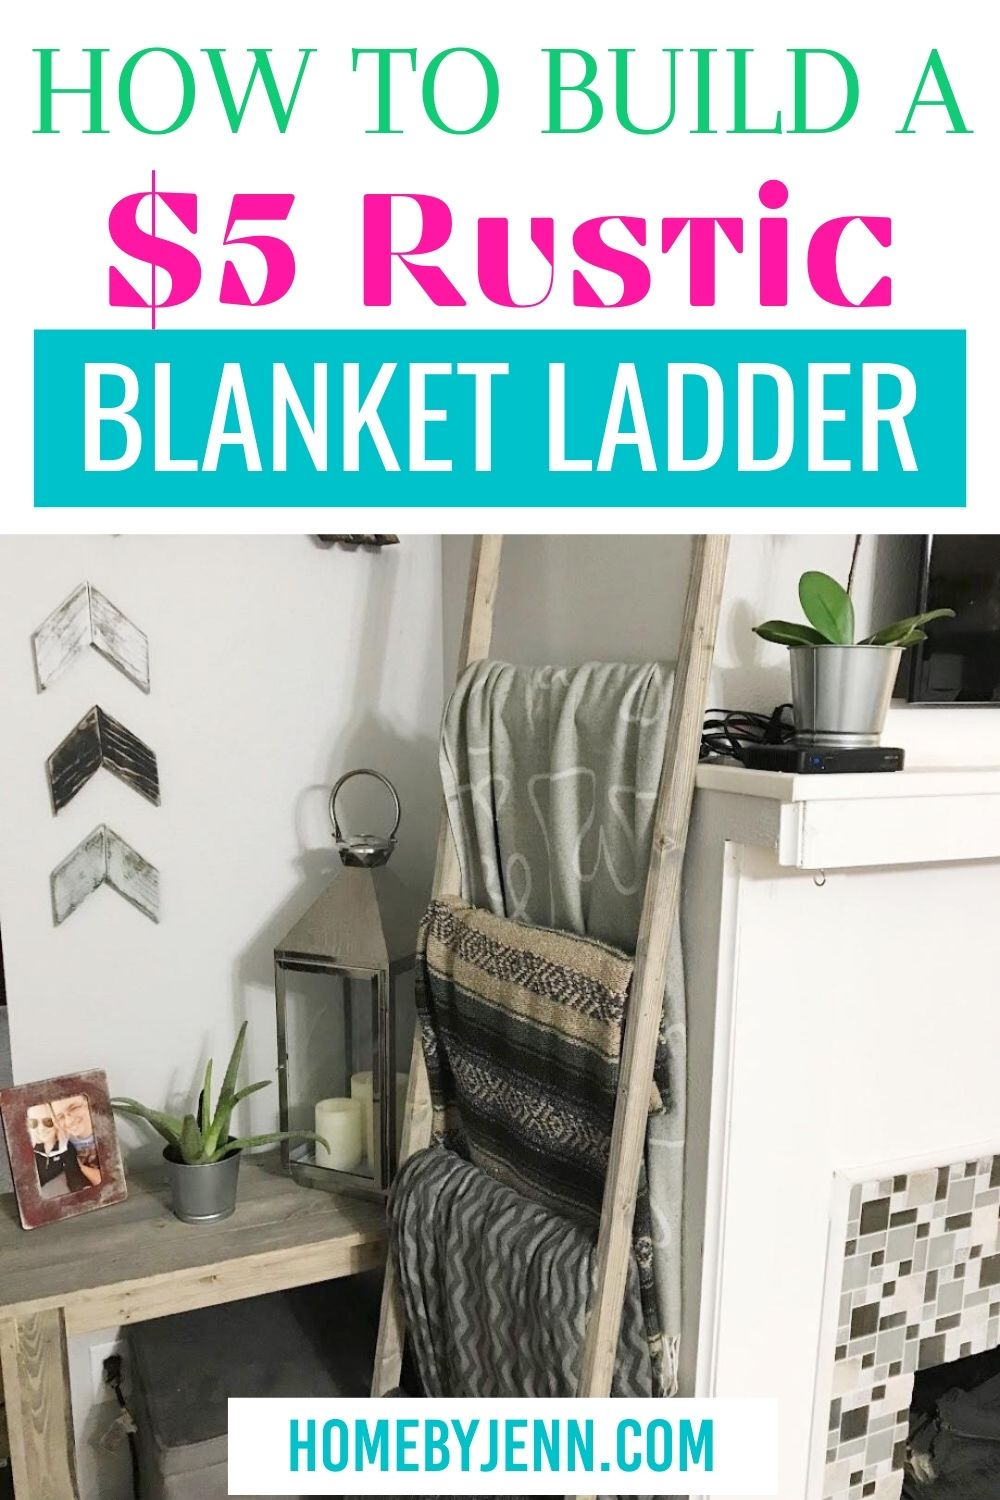 Make this simple DIY Blanket Ladder. This is blanket ladder is a perfect beginner DIY woodworking project and can be made for only $5. #DIY #DIYproject #woodworking #blanketladder #farmhouse #homedecor #rusticdecor #blanketladder #blanketladderdiy #diyblanketladder via @homebyjenn